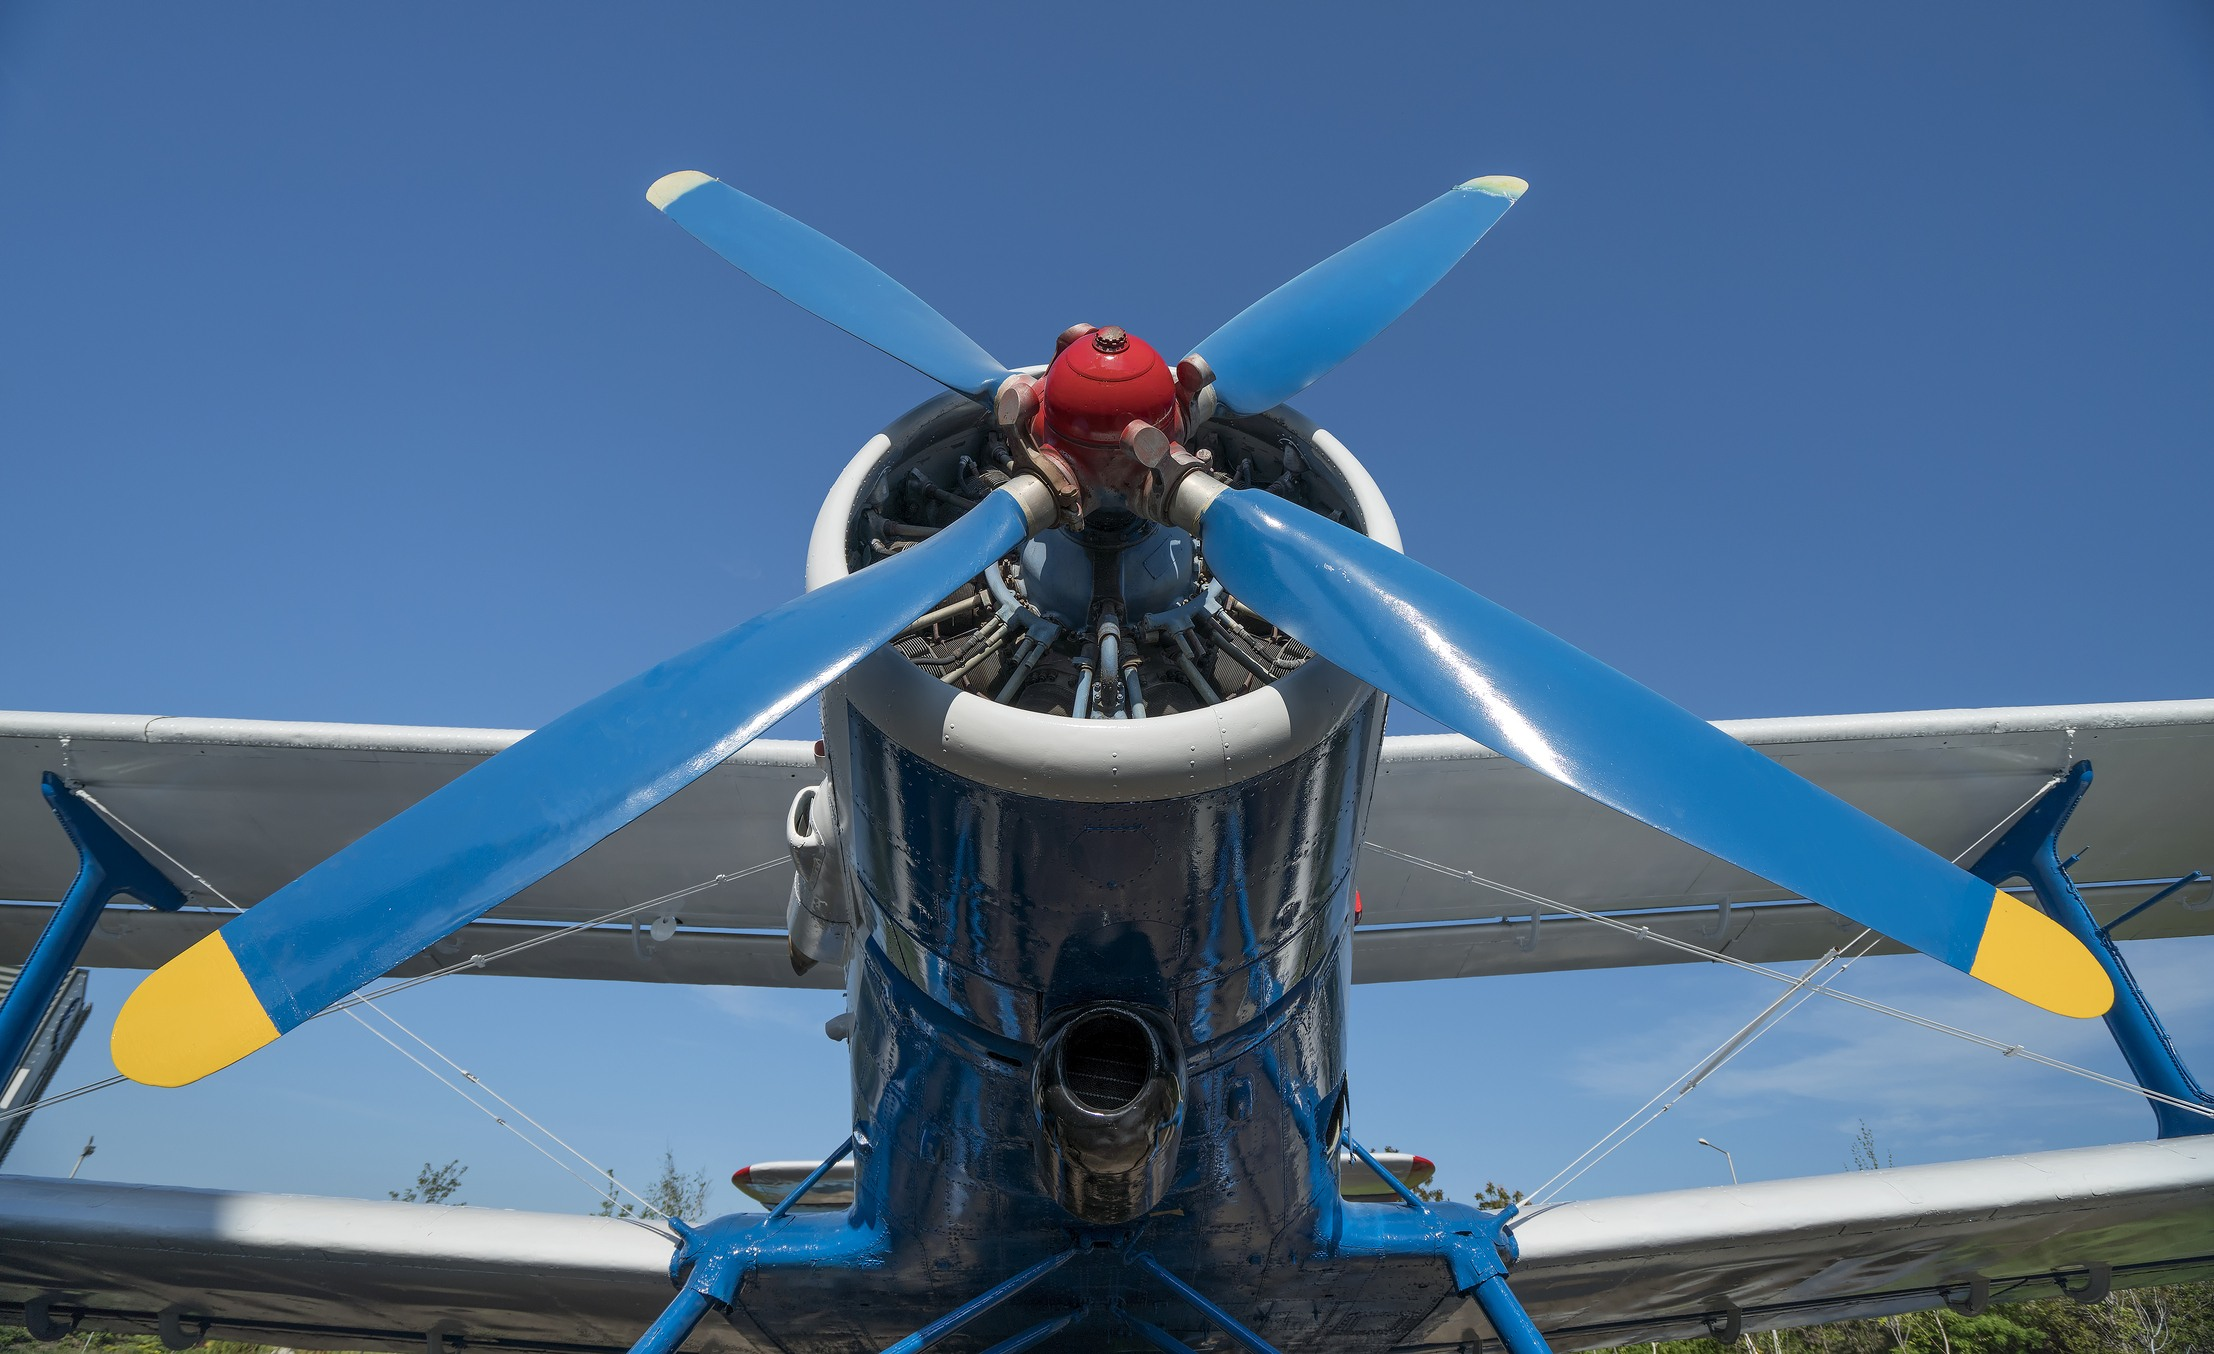 Blue and white airplane propeller